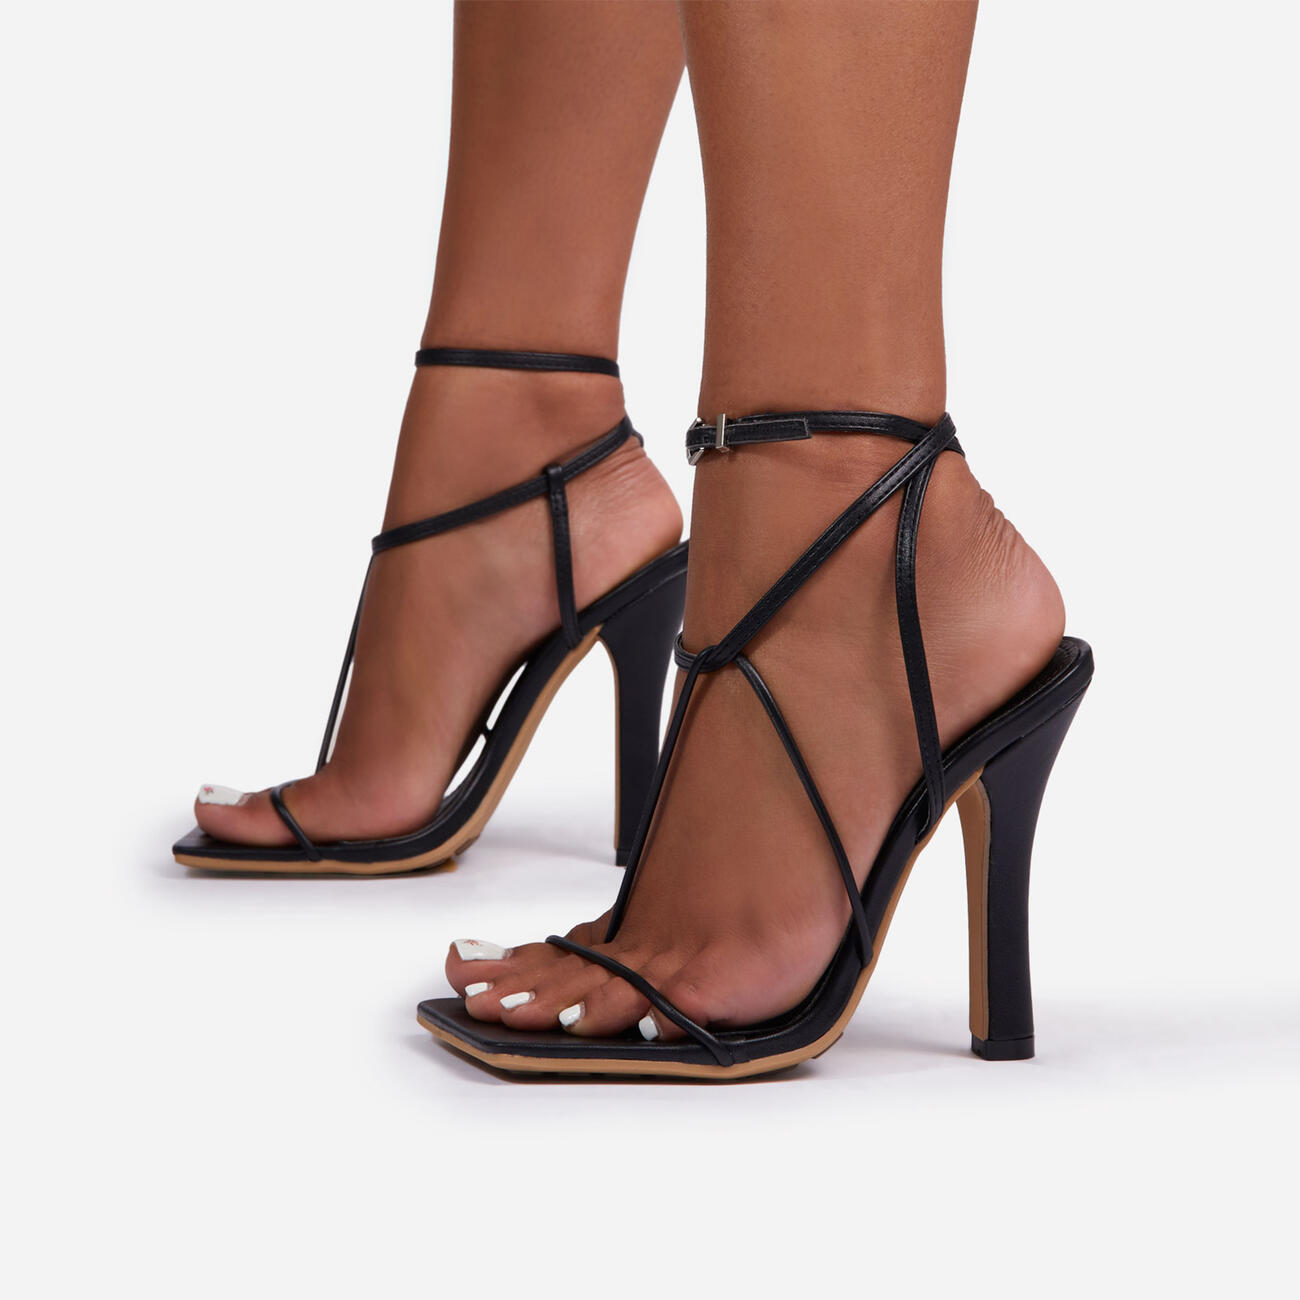 Glambition Strappy Square Toe Track Sole Heel In Black Faux Leather Image 1